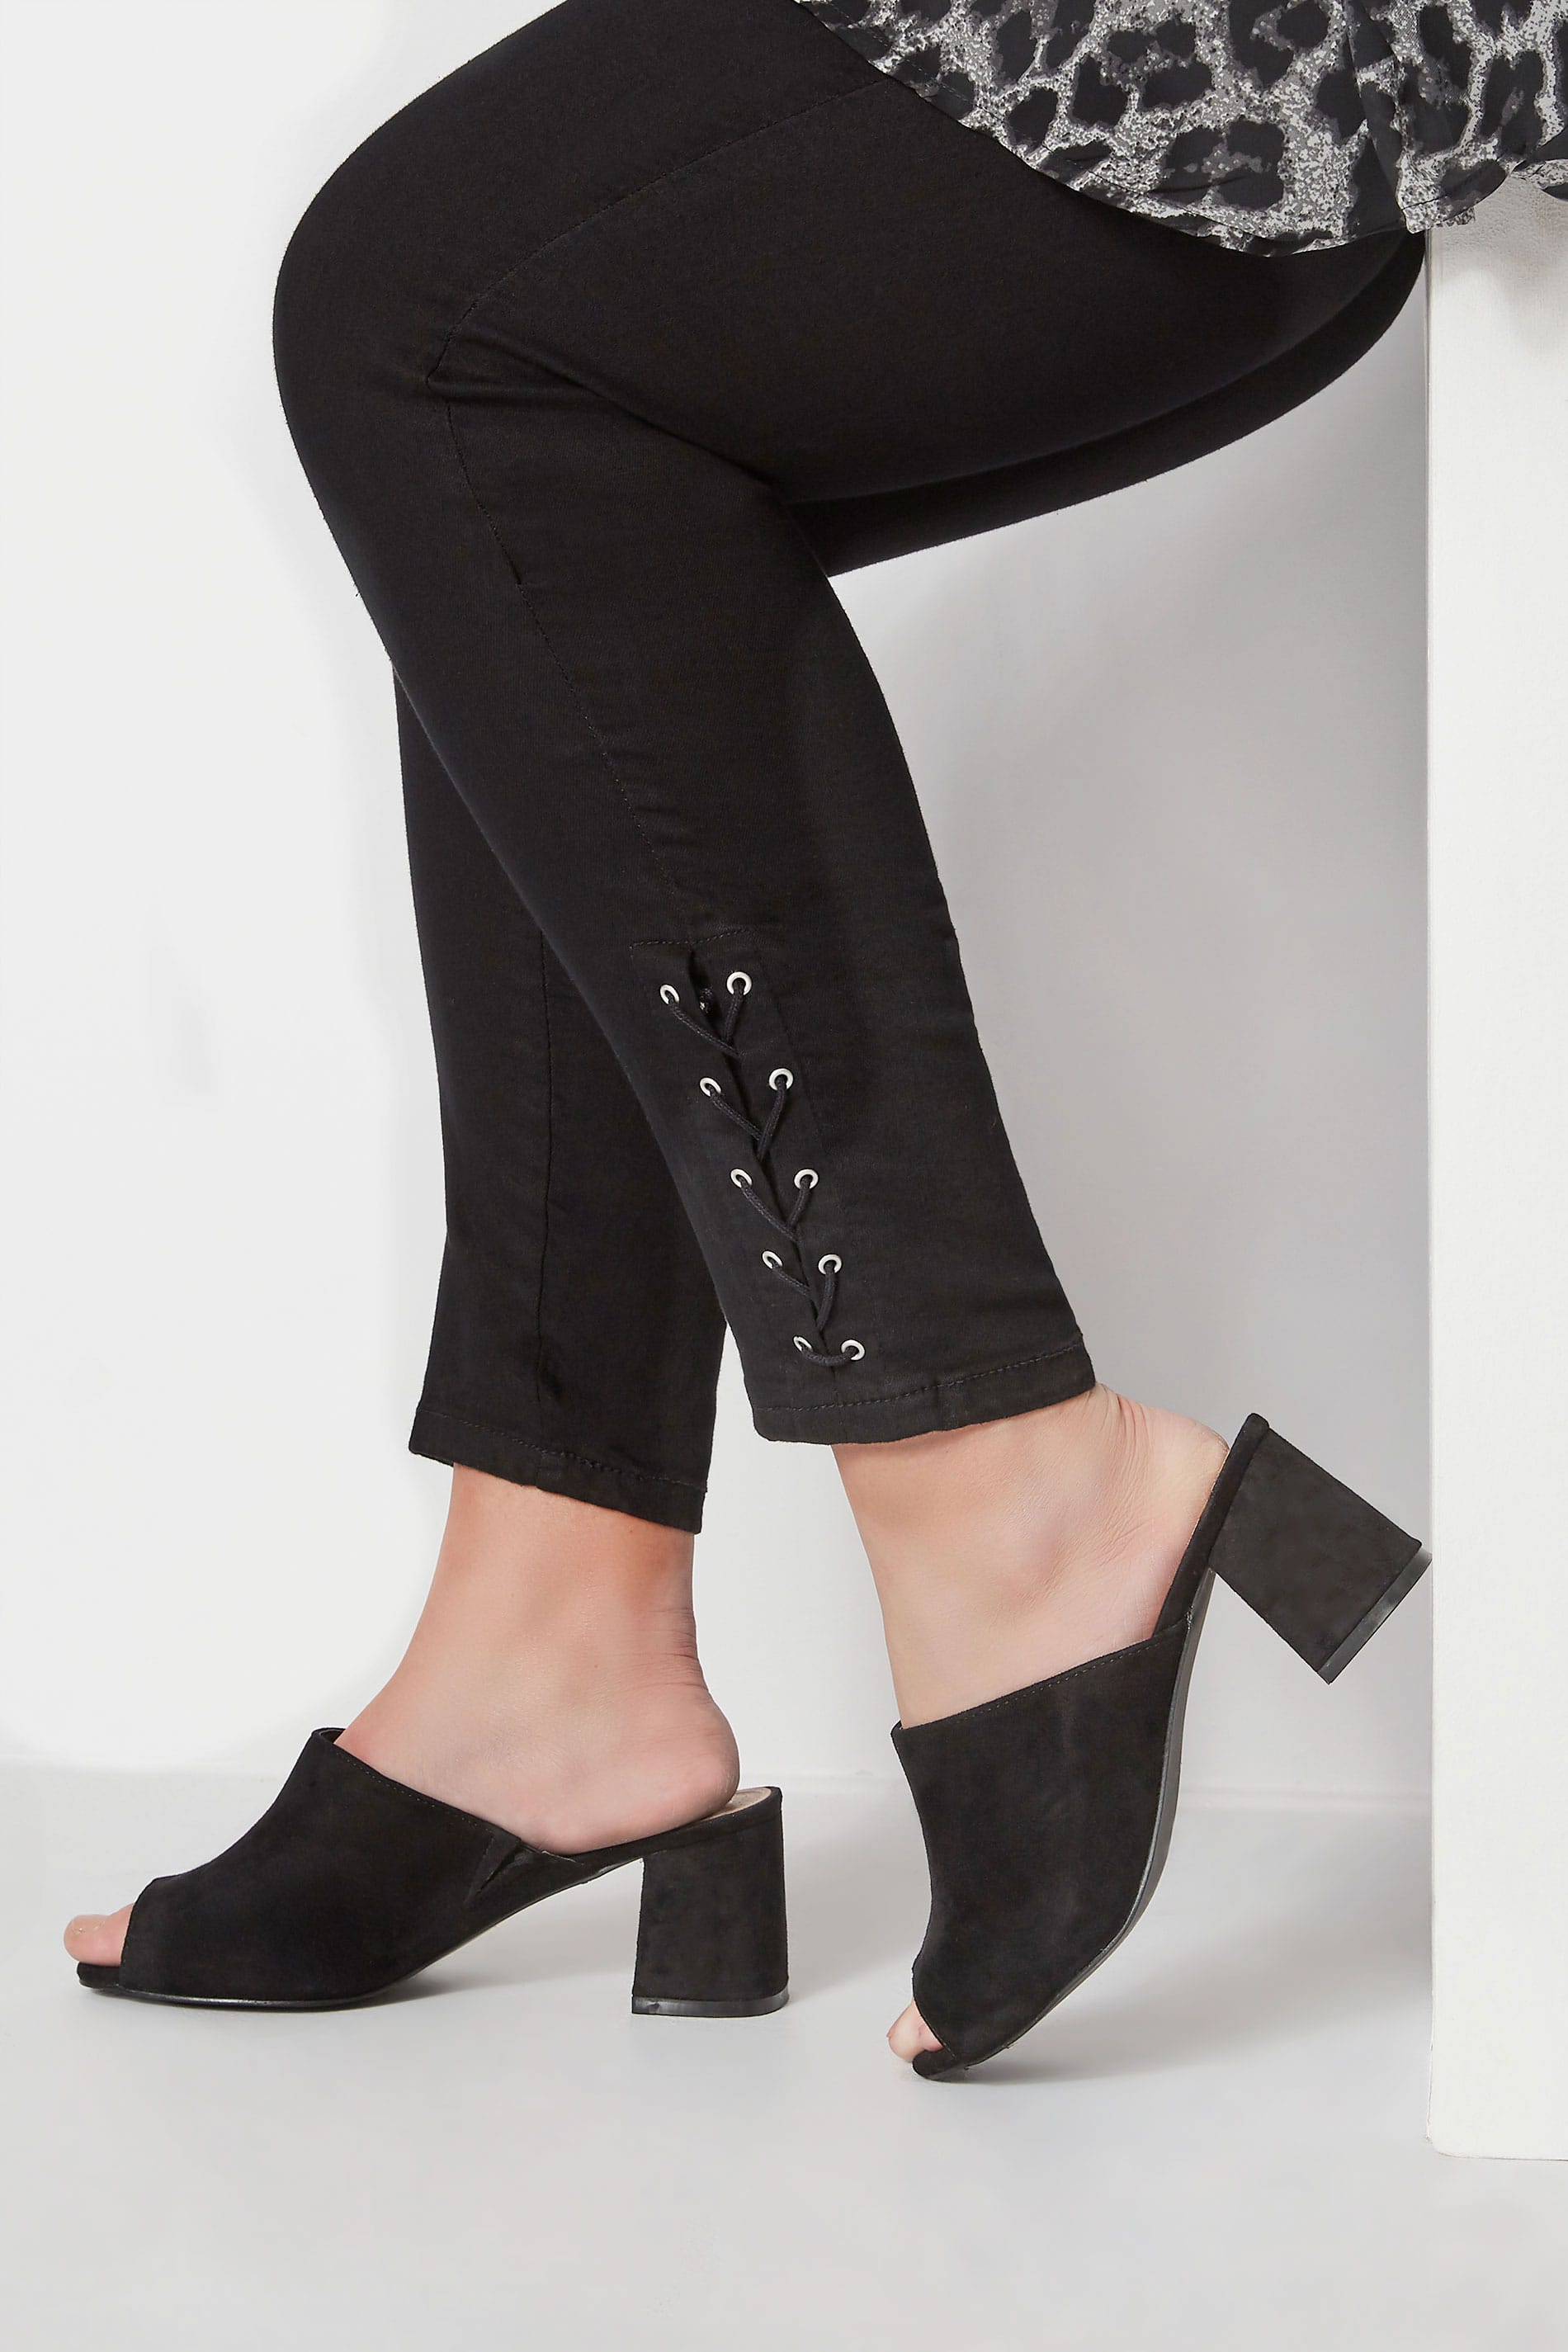 Black Mule Heeled Sandals In Extra Wide Fit